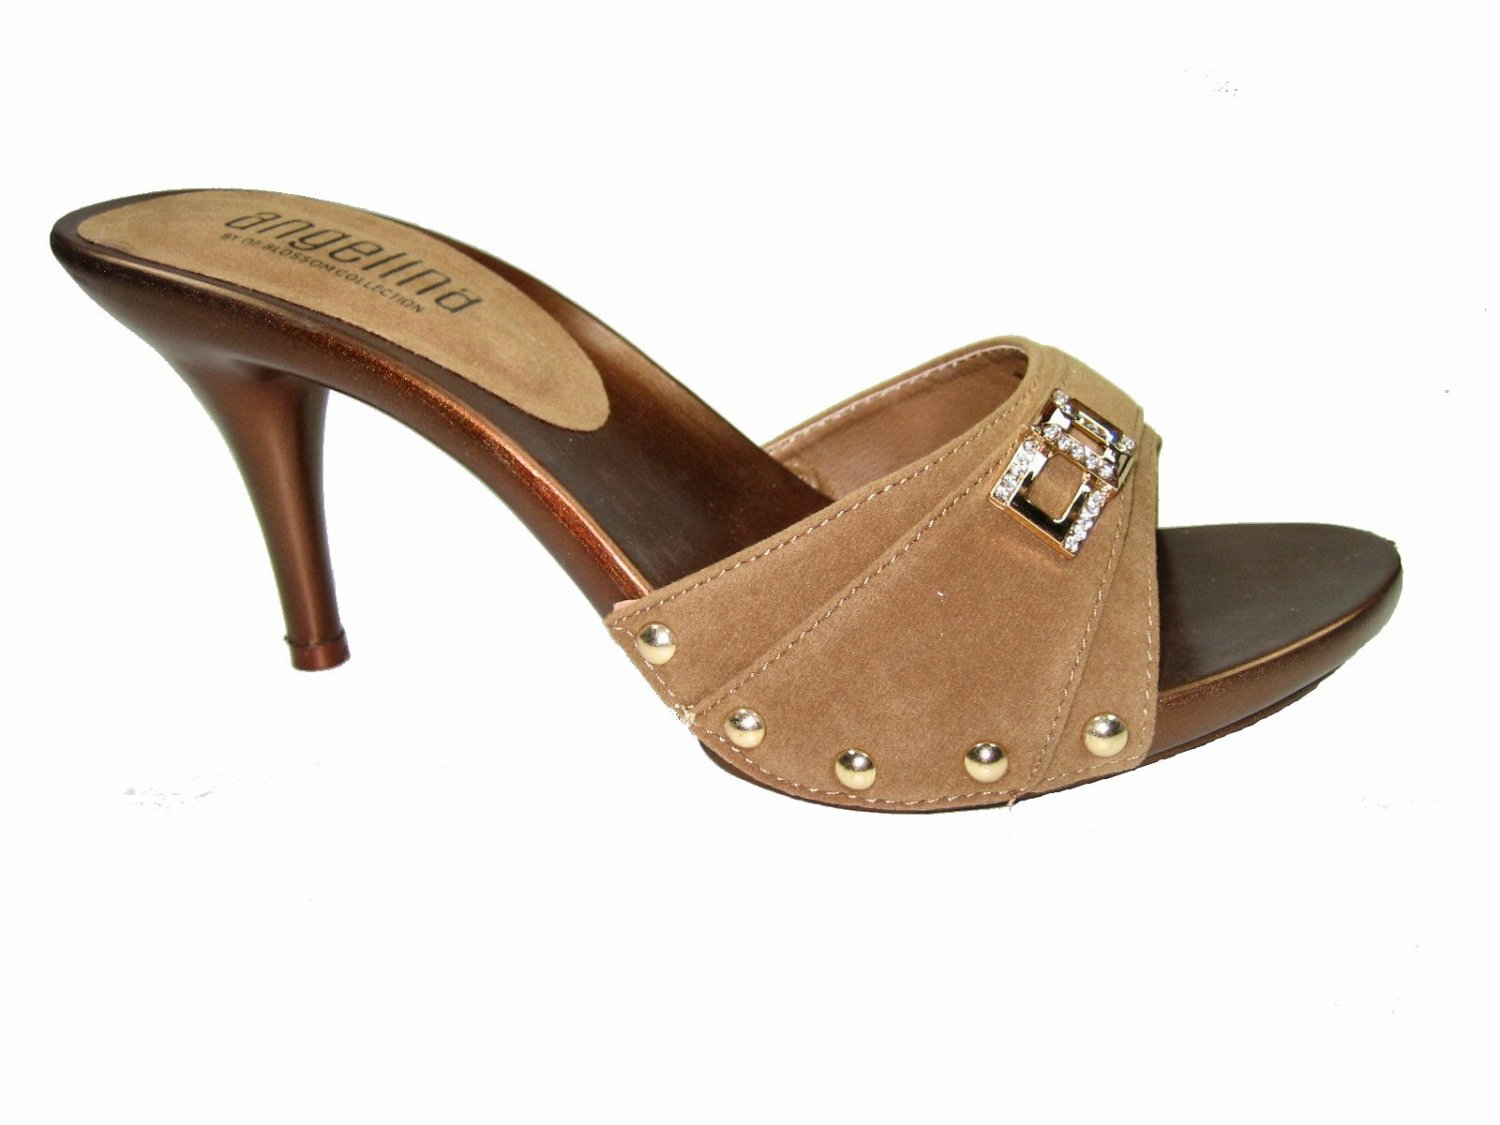 Blossom vote-56 one band slides mules 3.5 inch stiletto heel sandals vegan suede tan size 8.5